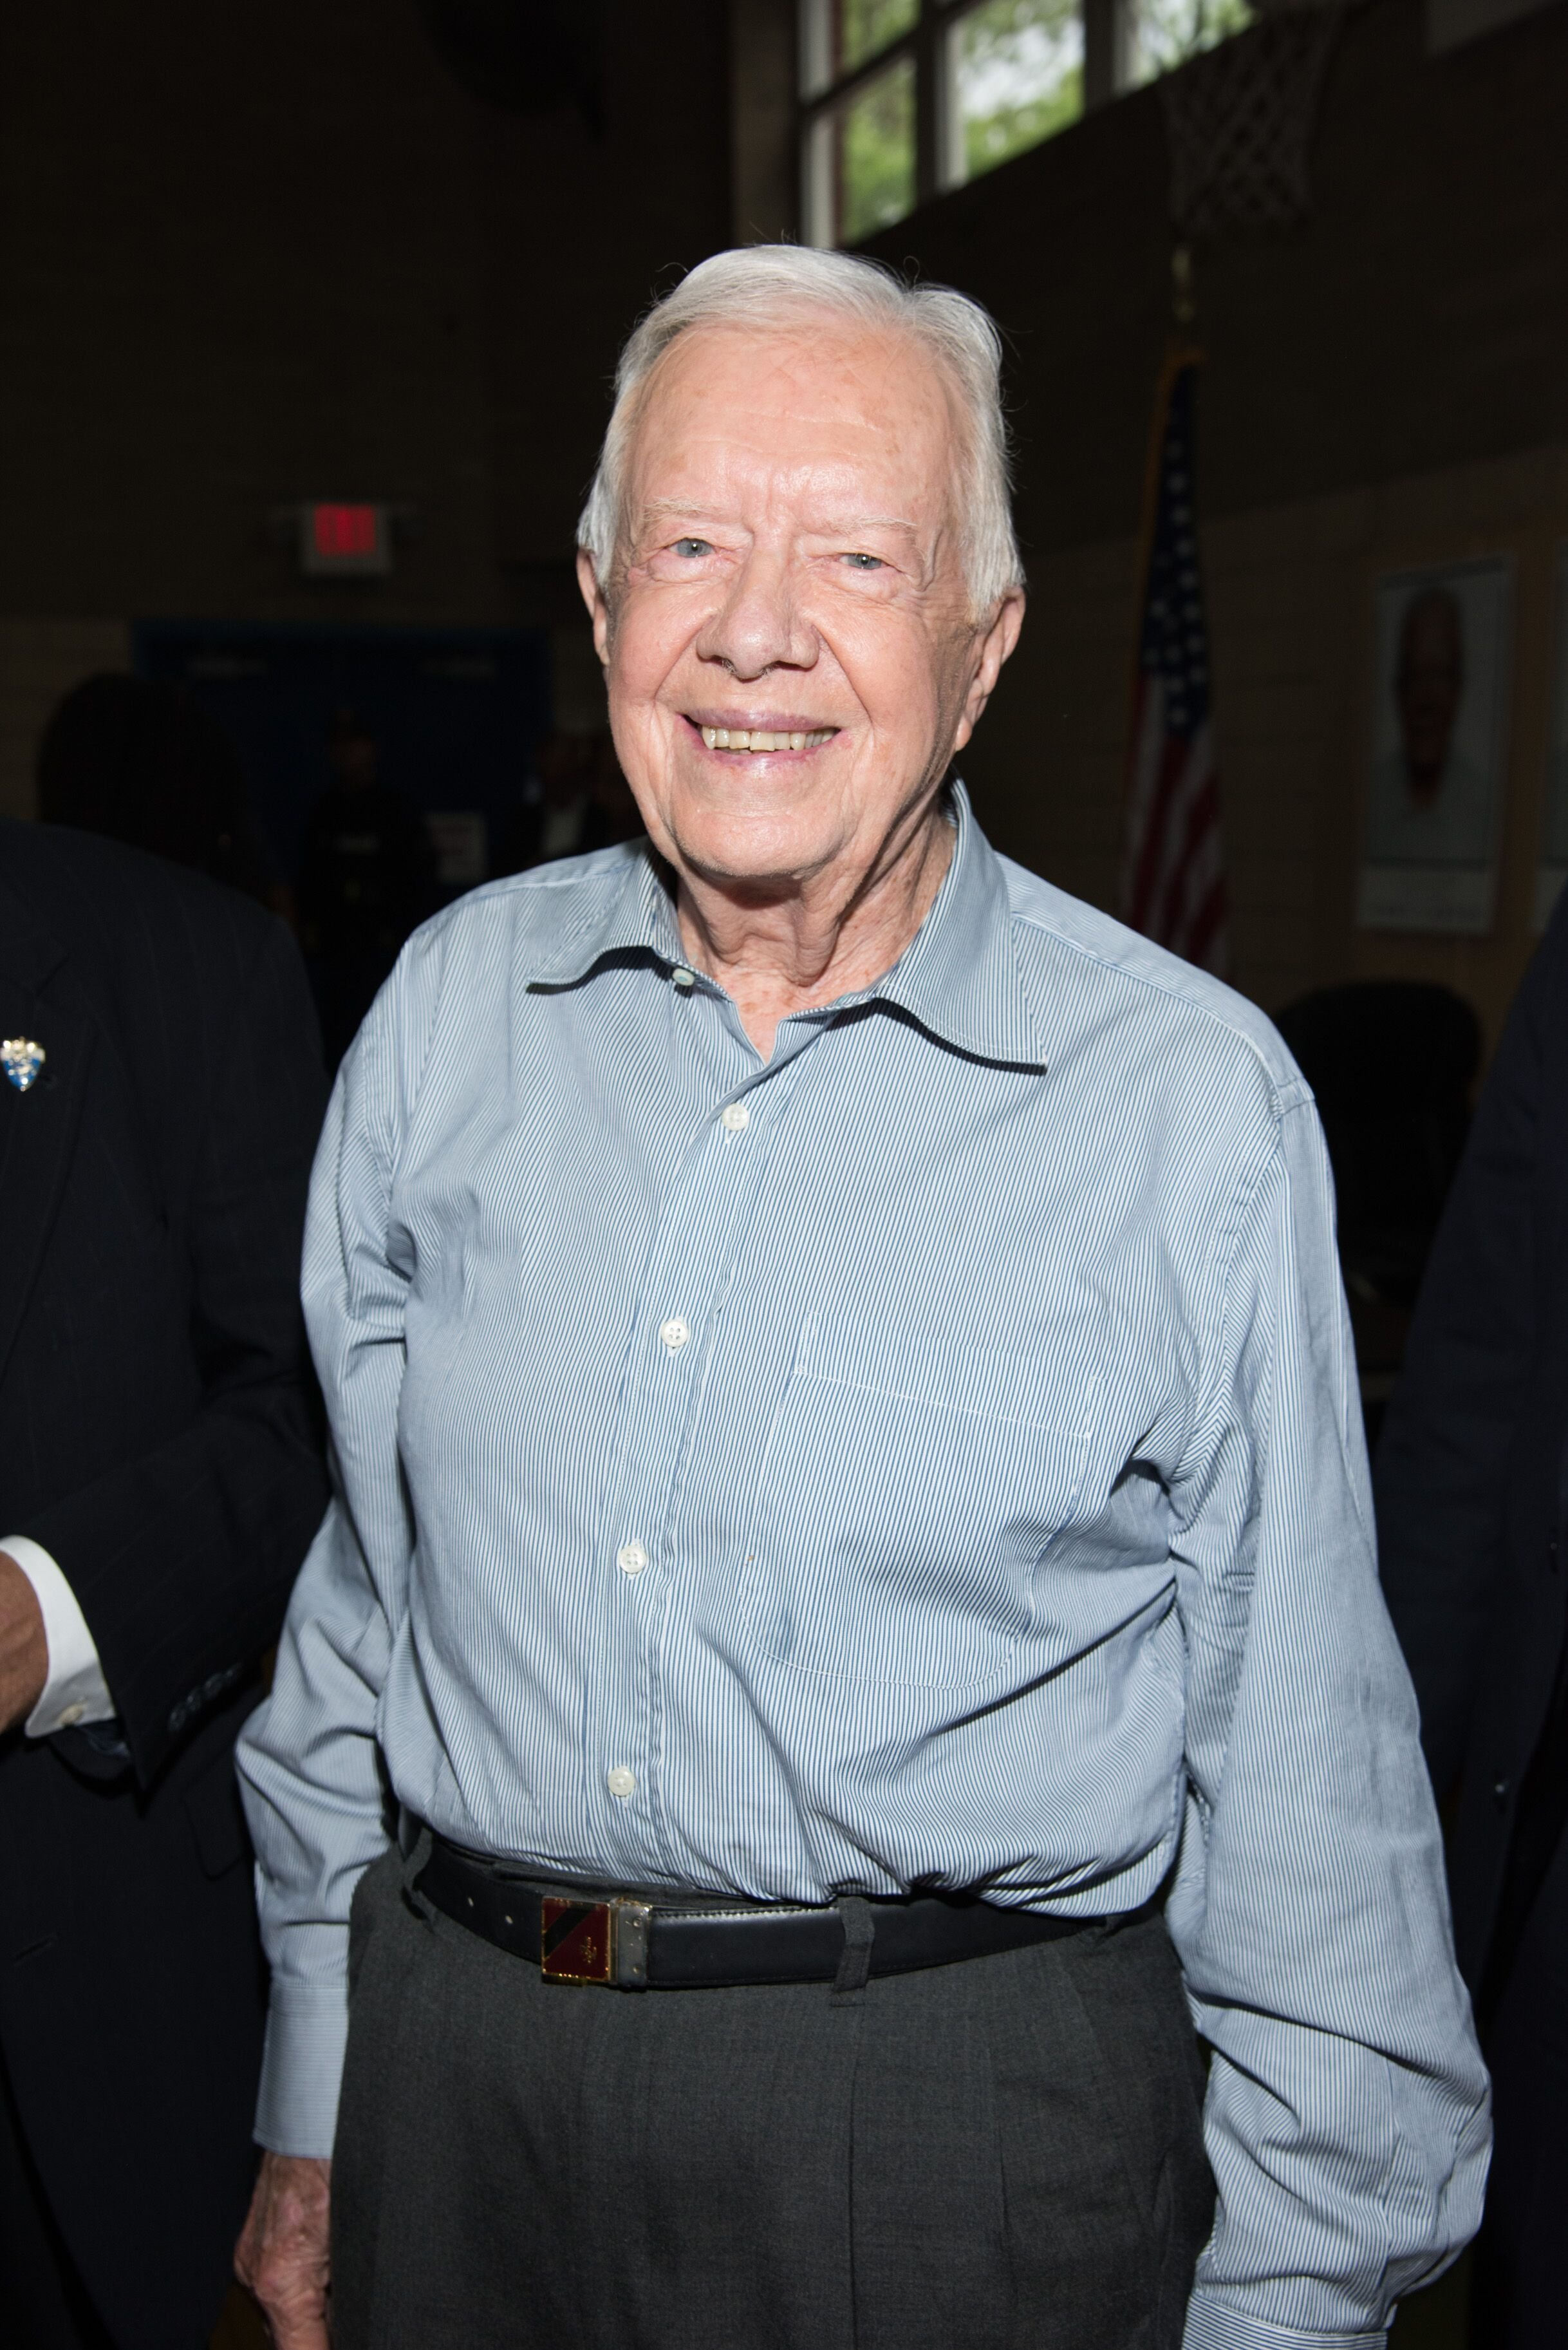 """Jimmy Carter signs copies of """"A Full Life Reflections At Ninety"""" at Bookends Bookstore on July 8, 2015, in Ridgewood, New Jersey 